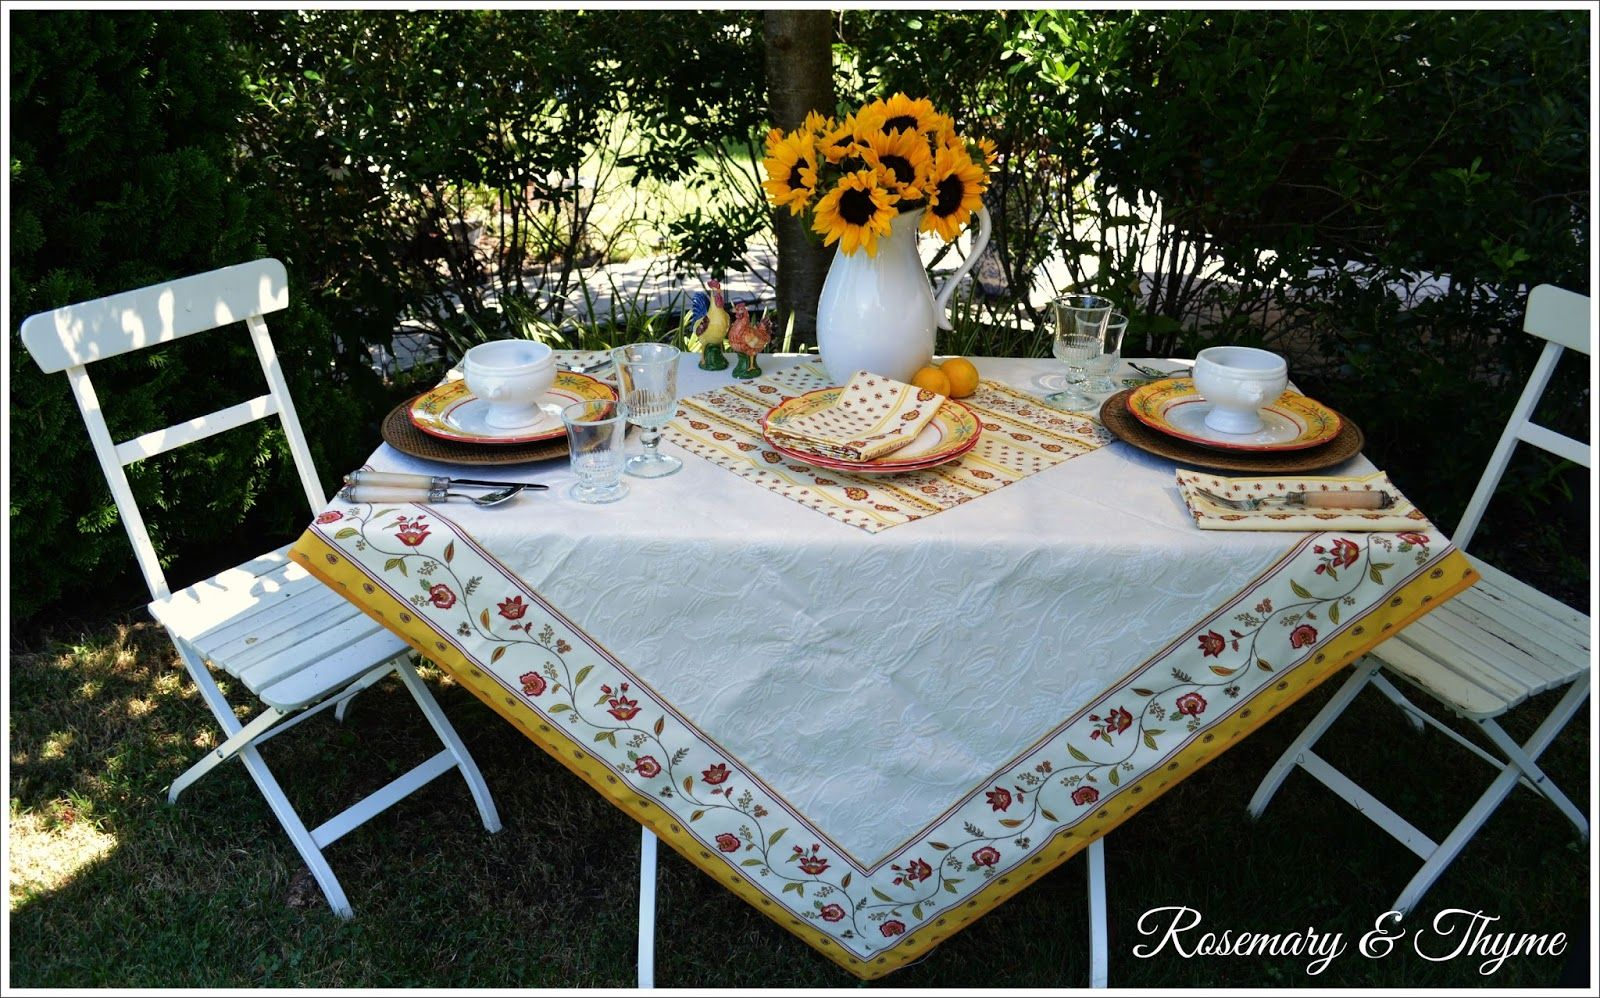 Rosemary and Thyme Table Inspired By The